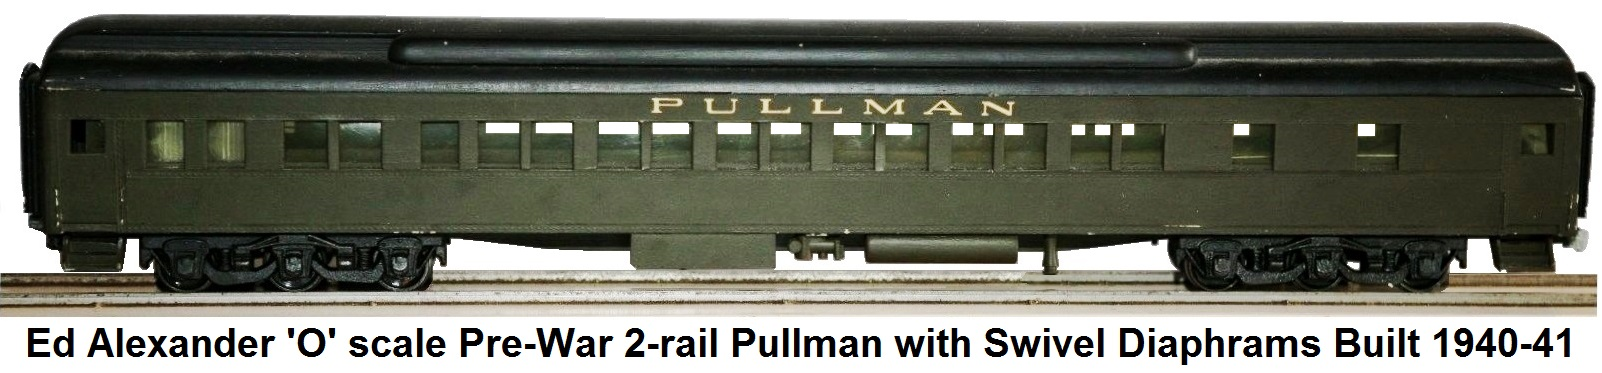 Ed Alexander Pre-war 'O' scale 2-rail Pullman with Swivel Diamphrams Built 1940-41